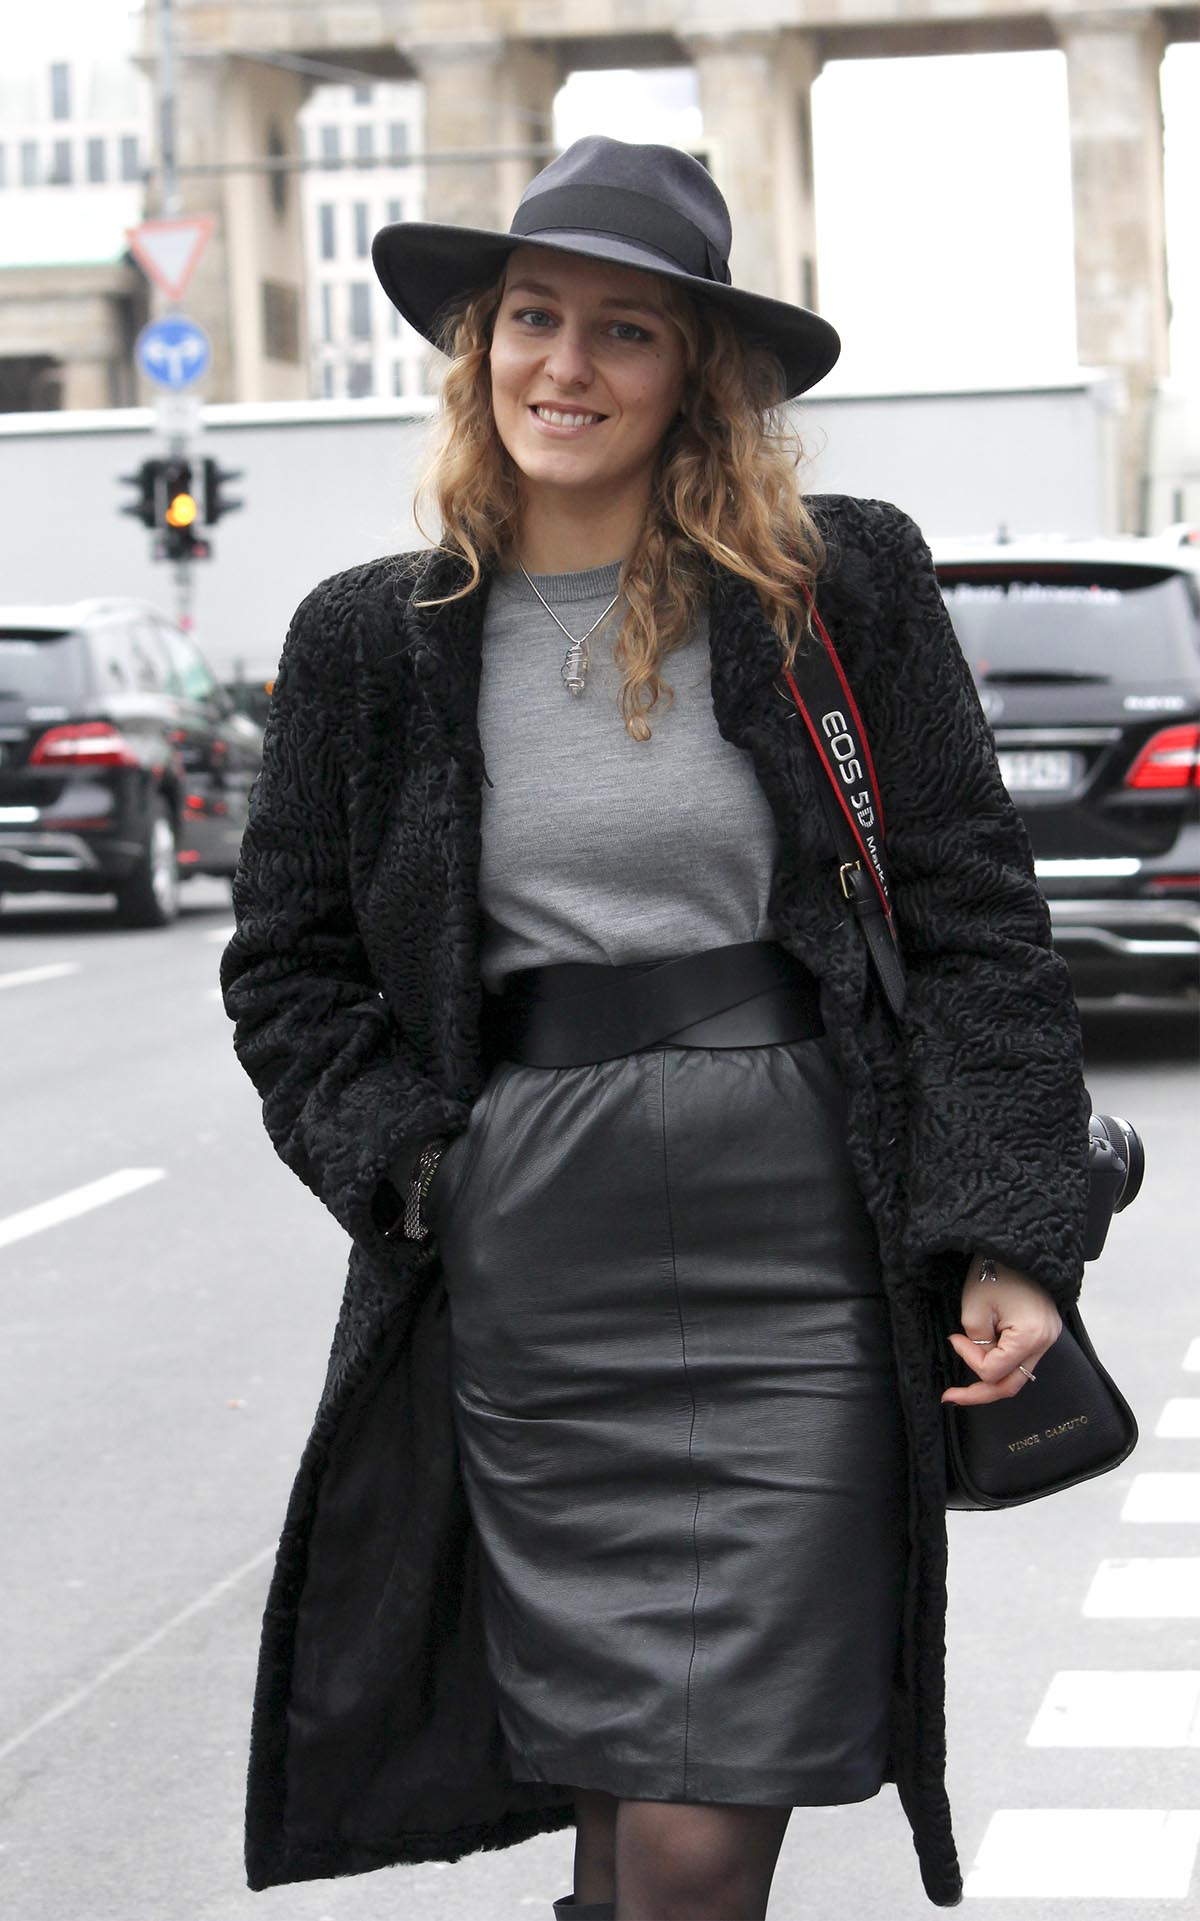 MM_Streetstyle_Tag2_05